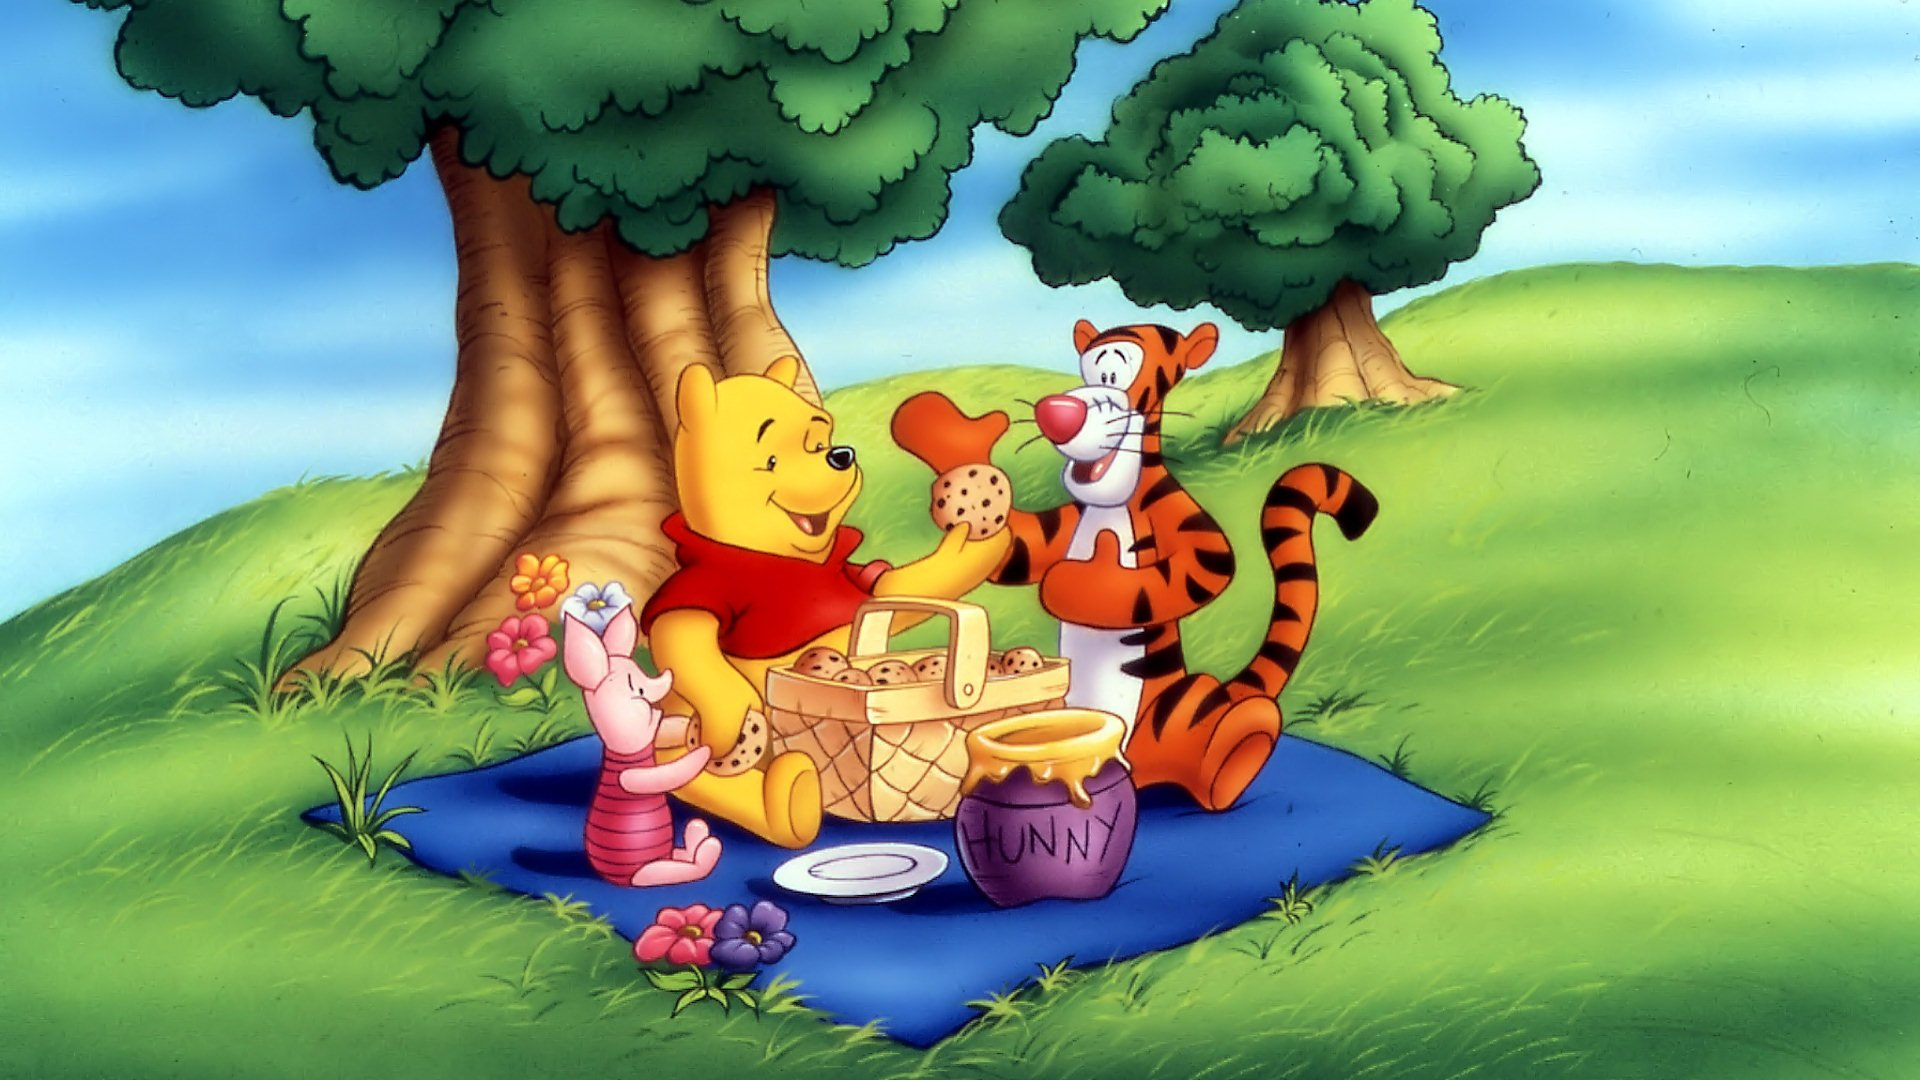 Winnie The Pooh Wallpapers HD cookies